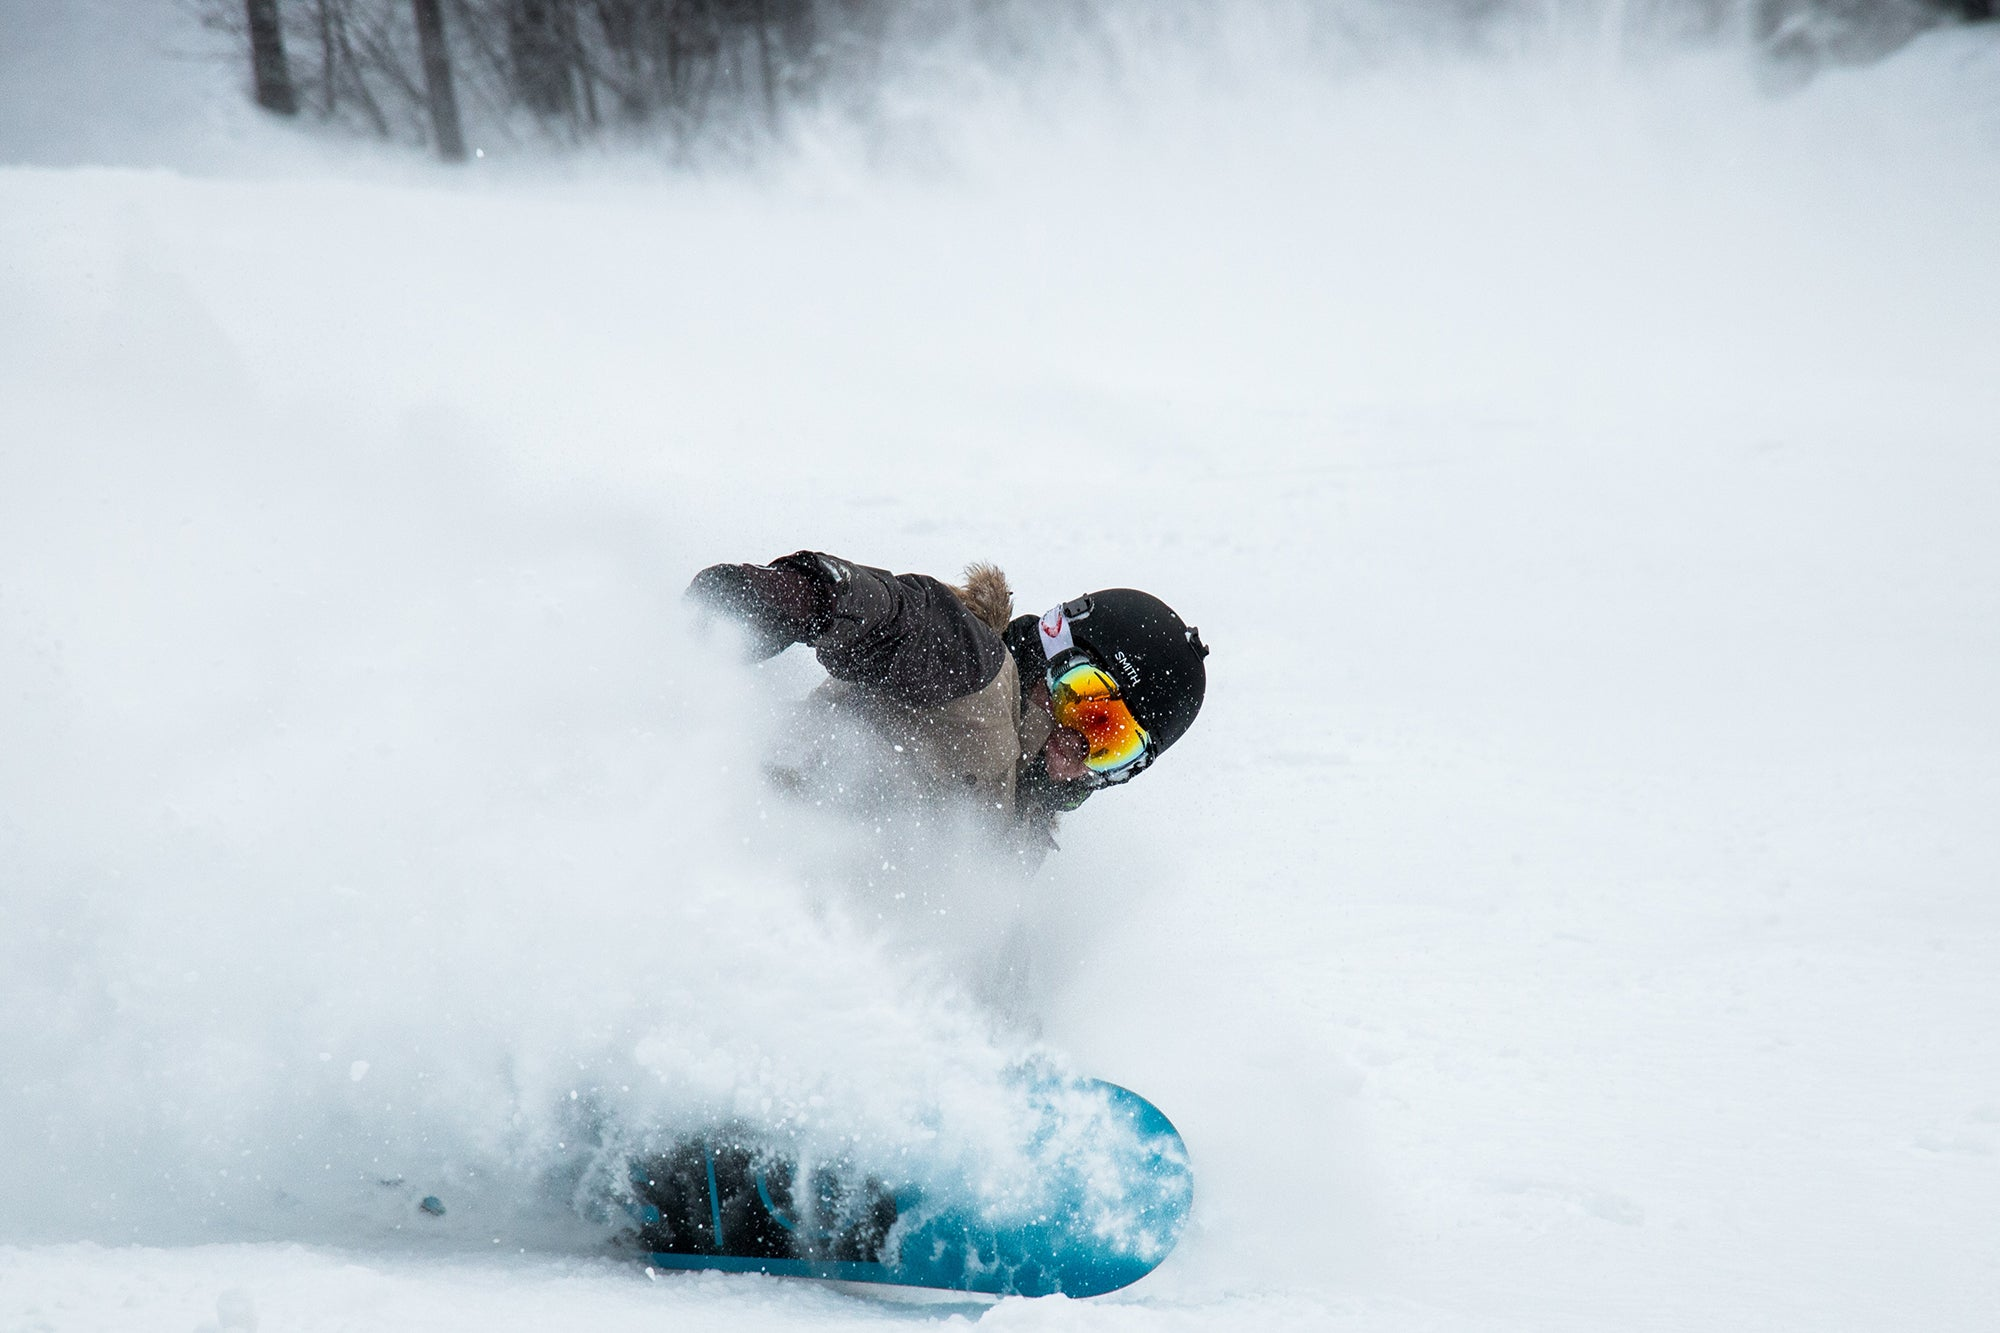 person snowboarding with helmet and the best snowboard goggles and carving through some snow